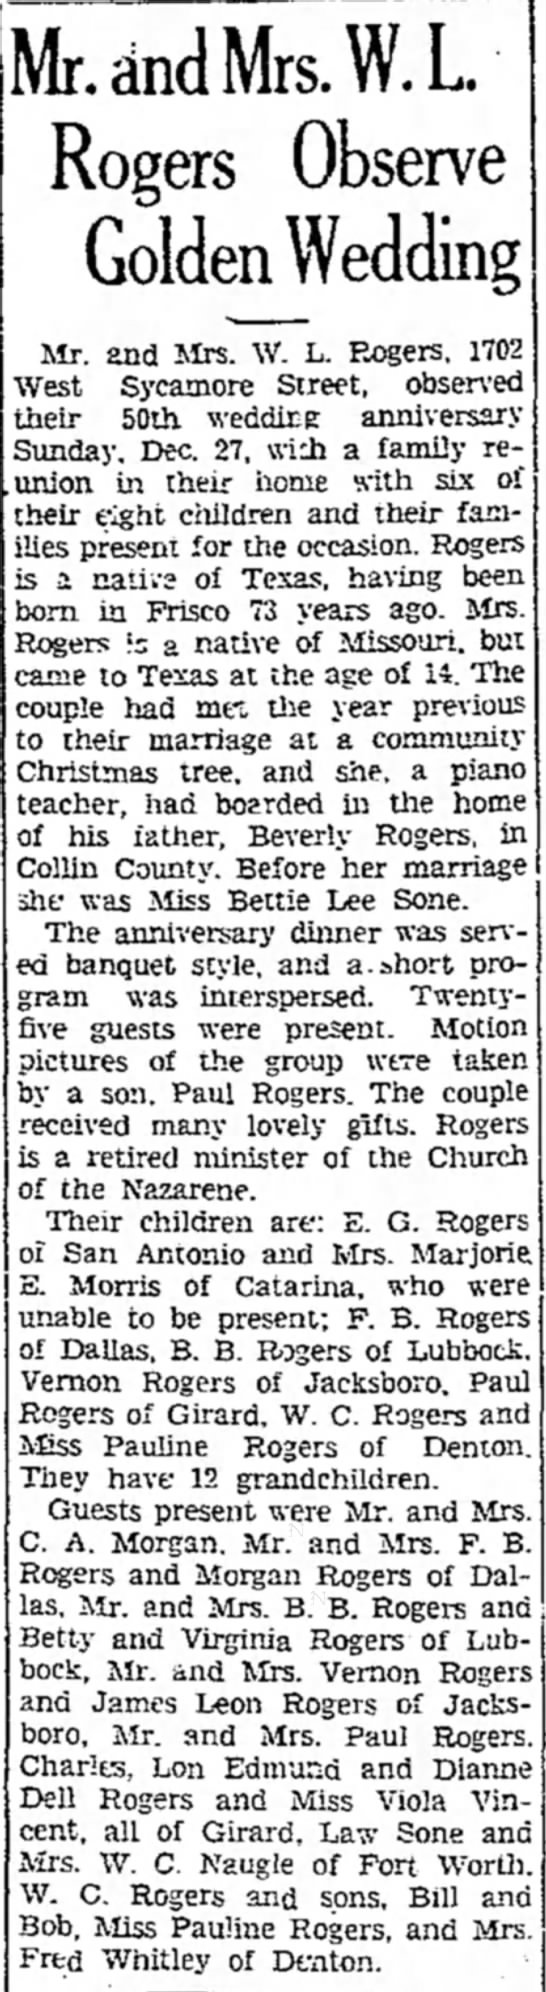 "W. L. ""Lonnie"" Rogers and wife - 50th anniversary - Denton Record-Chronicle -- Jan. 2, 1937 - cincl Mrs. W. L ^ Rogers Observe Golden Wedding..."